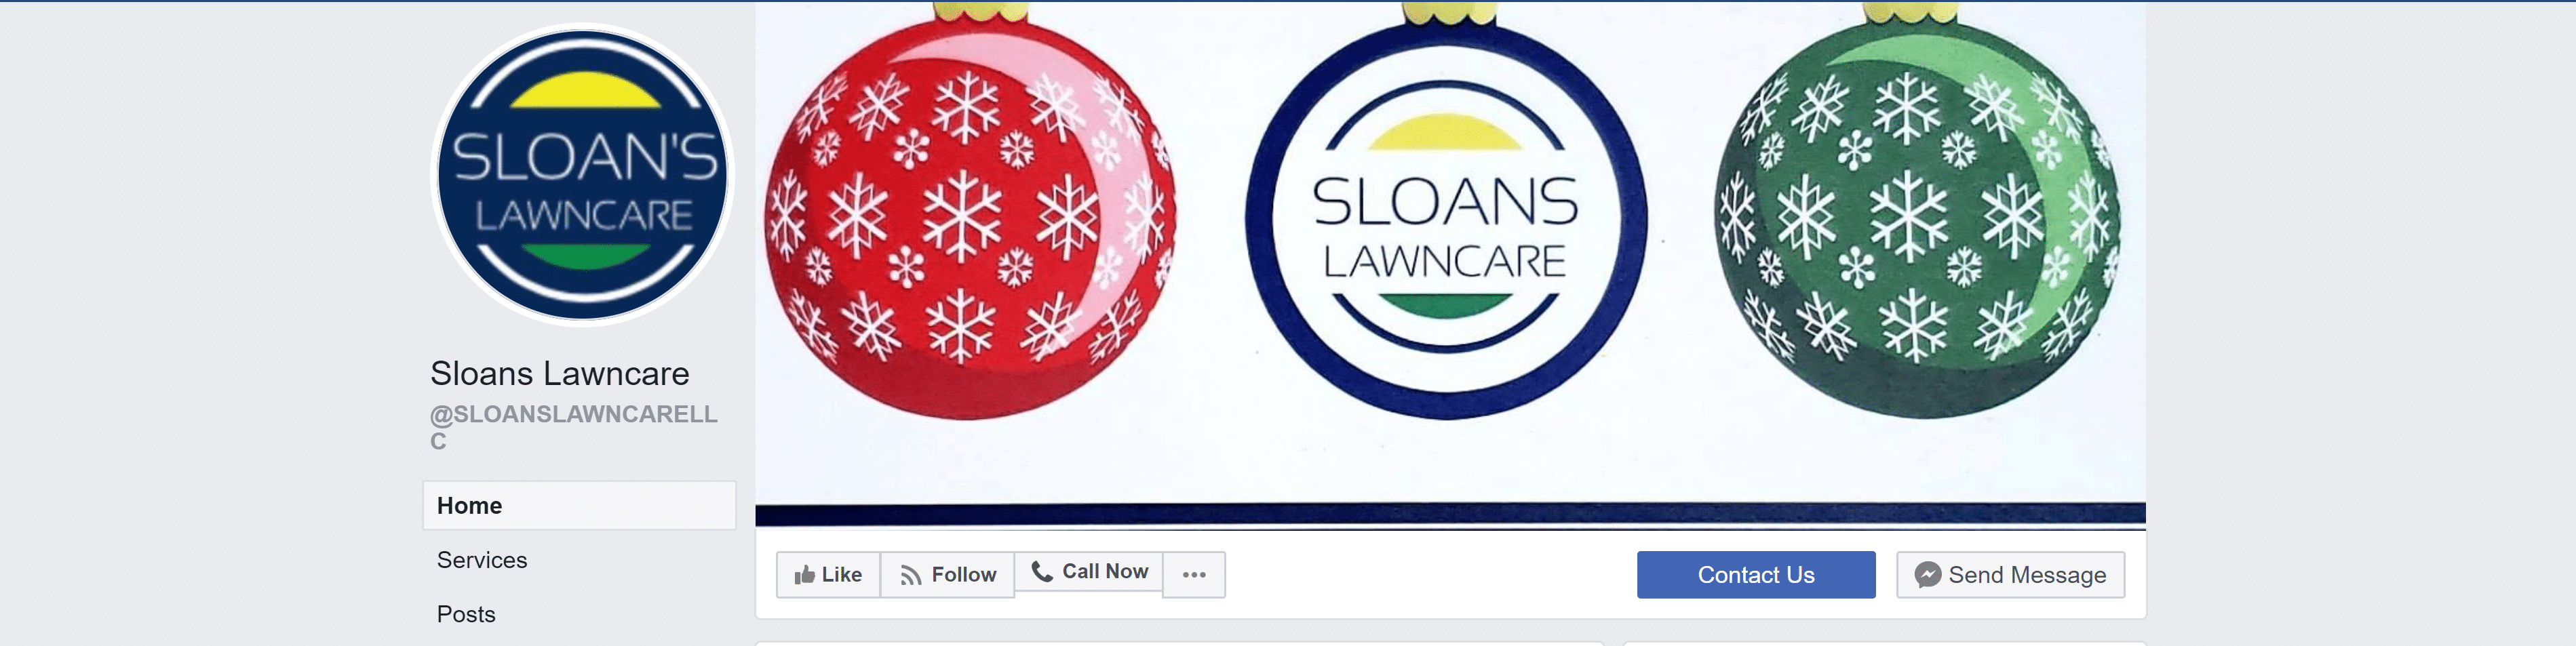 Sloan's Lawn Care Facebook